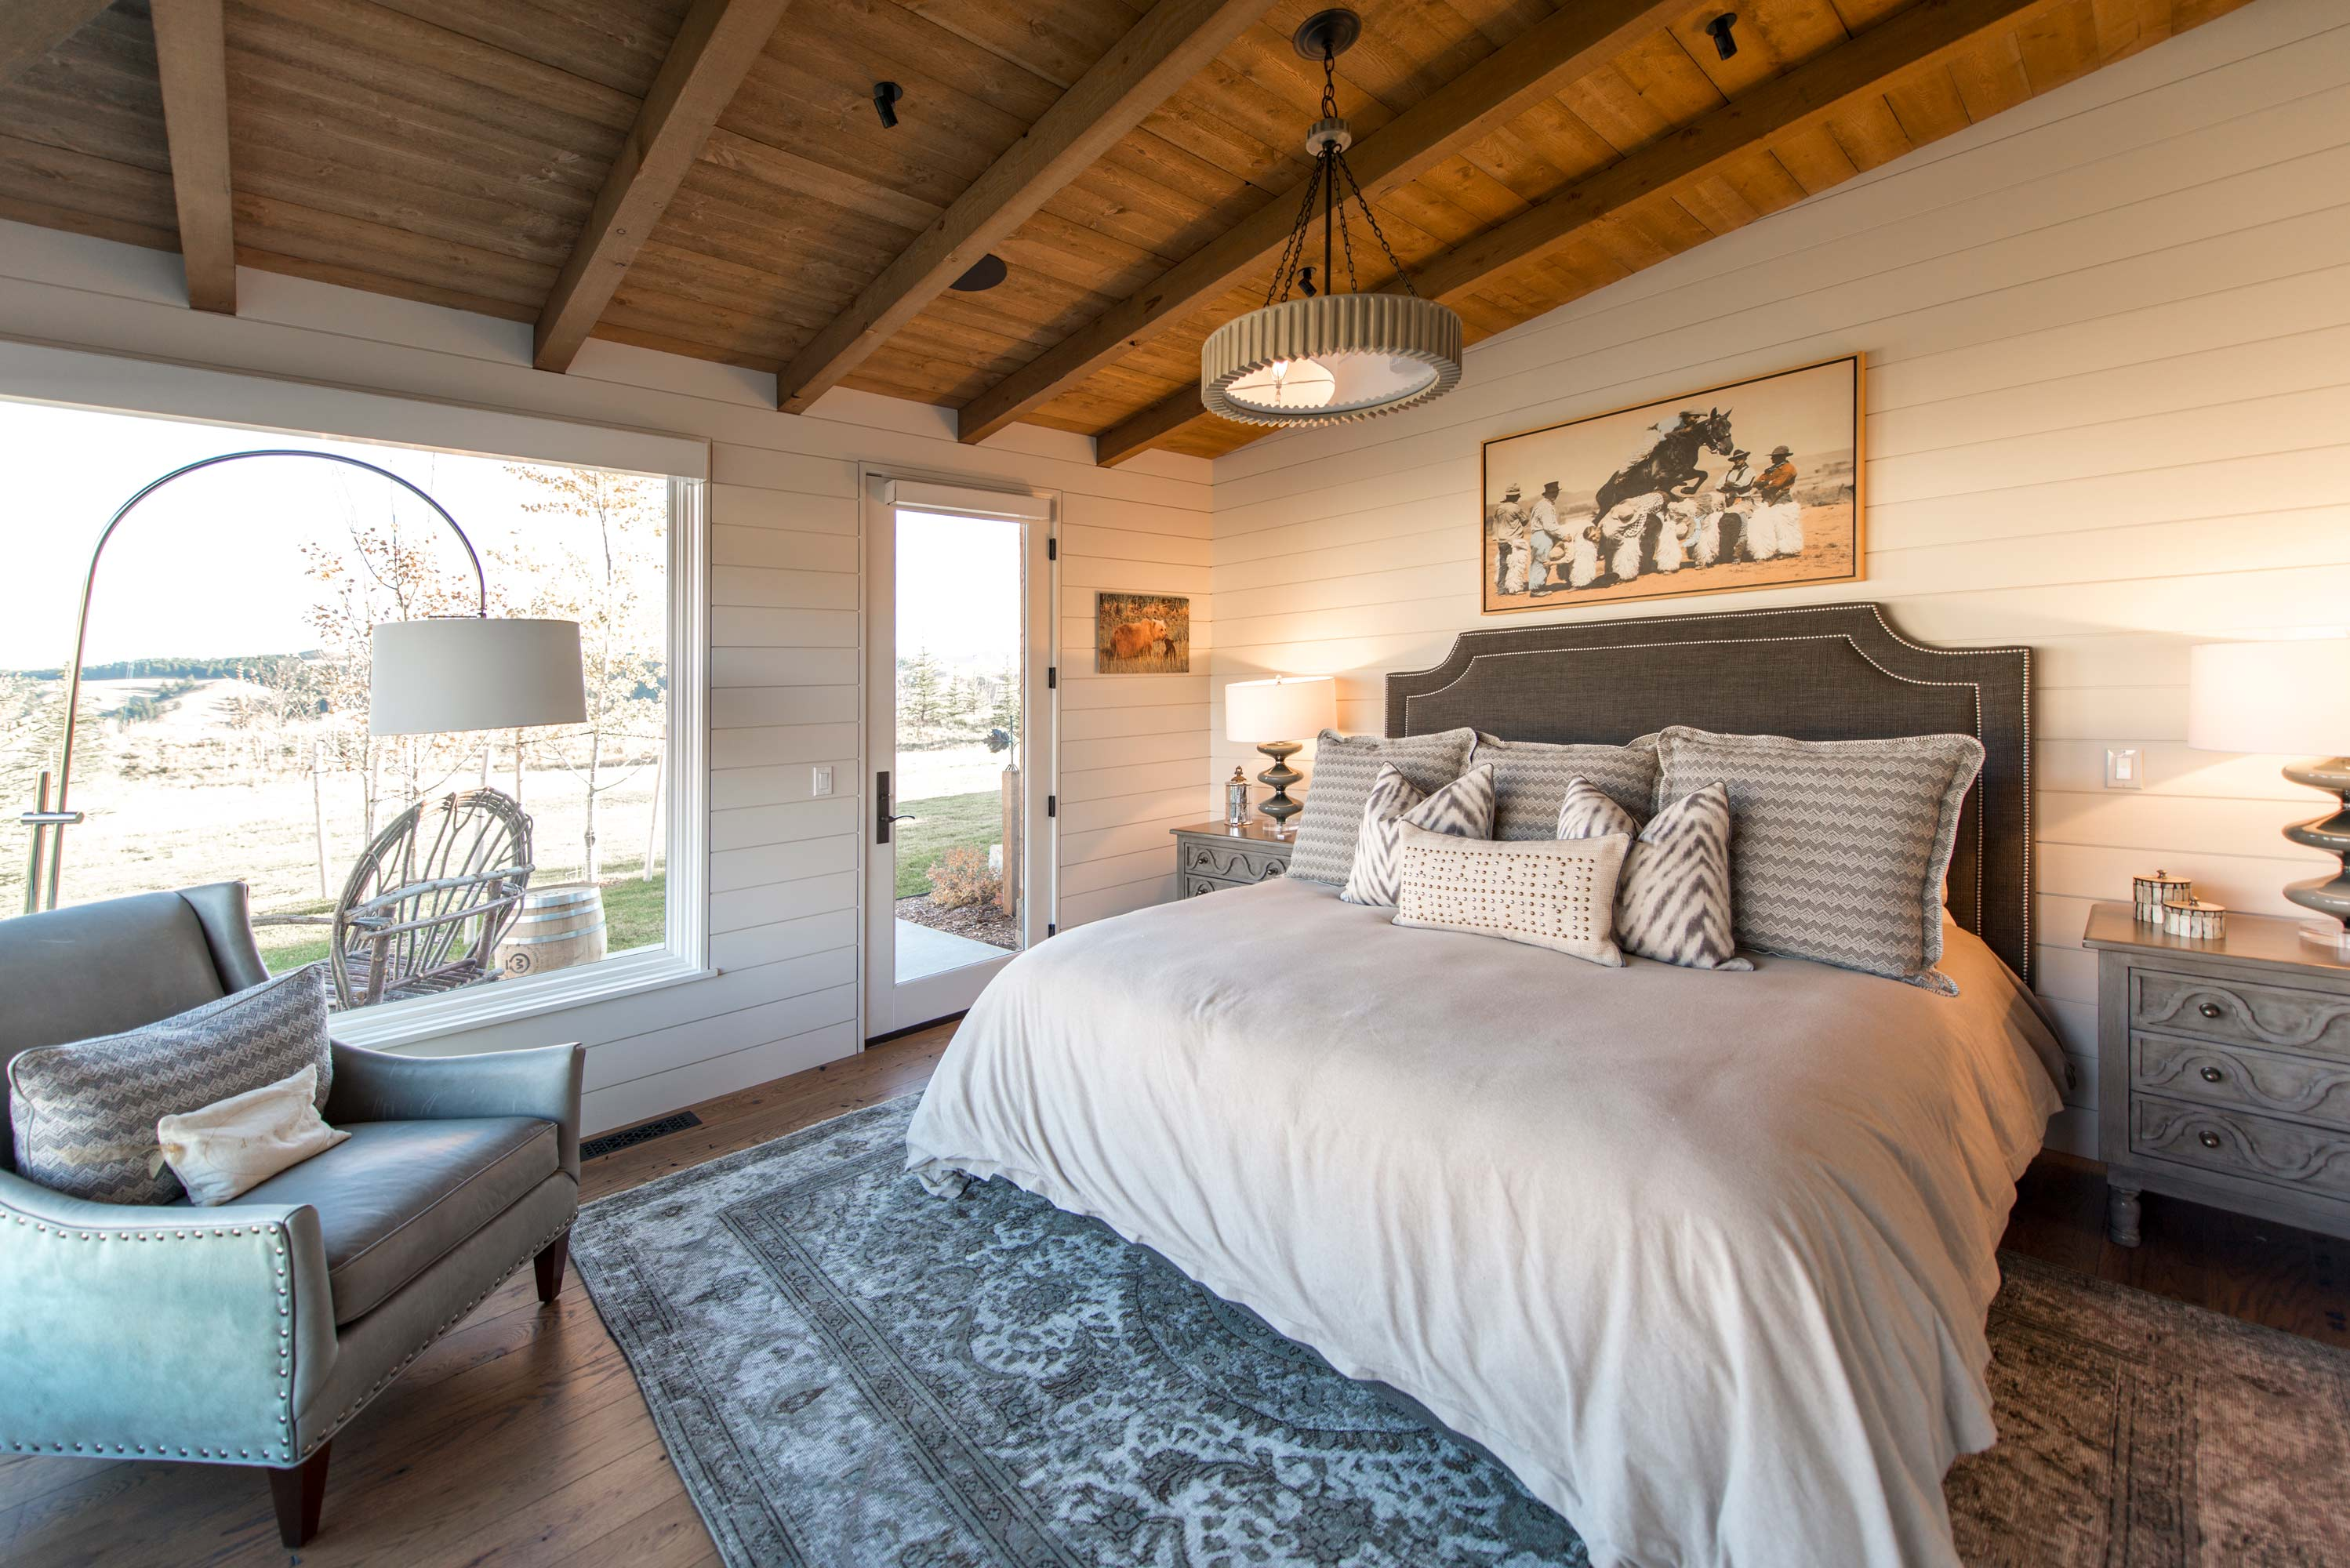 Locati-Architects-3D-Ranch-Int-Guest-House-Suite-02 - Locati ... on ranch mansion designs, ranch country house designs, ranch patio designs, ranch living room designs, ranch bunkhouse designs, ranch garden designs,